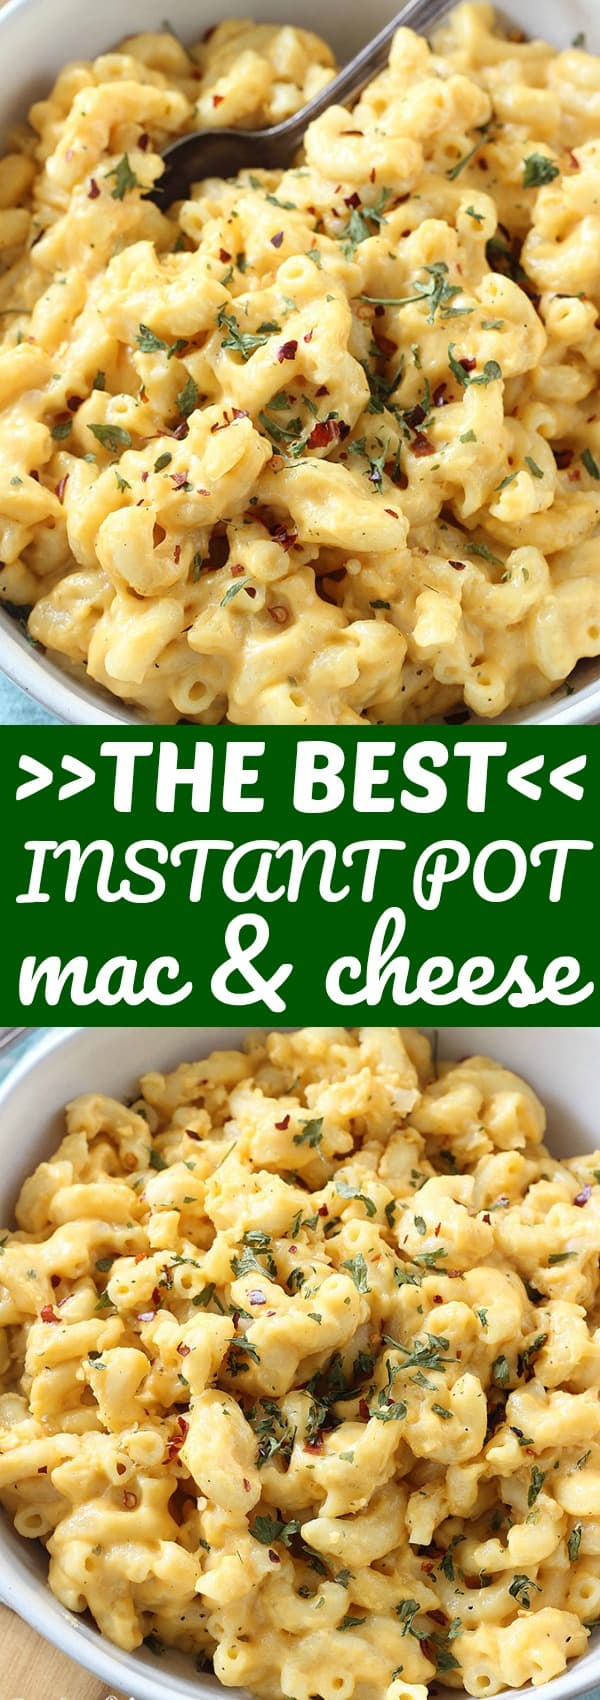 This Instant Pot Mac and Cheese goes from pot to table in under 30 minutes, and is so cheesy and delicious! Way better than the boxed stuff!